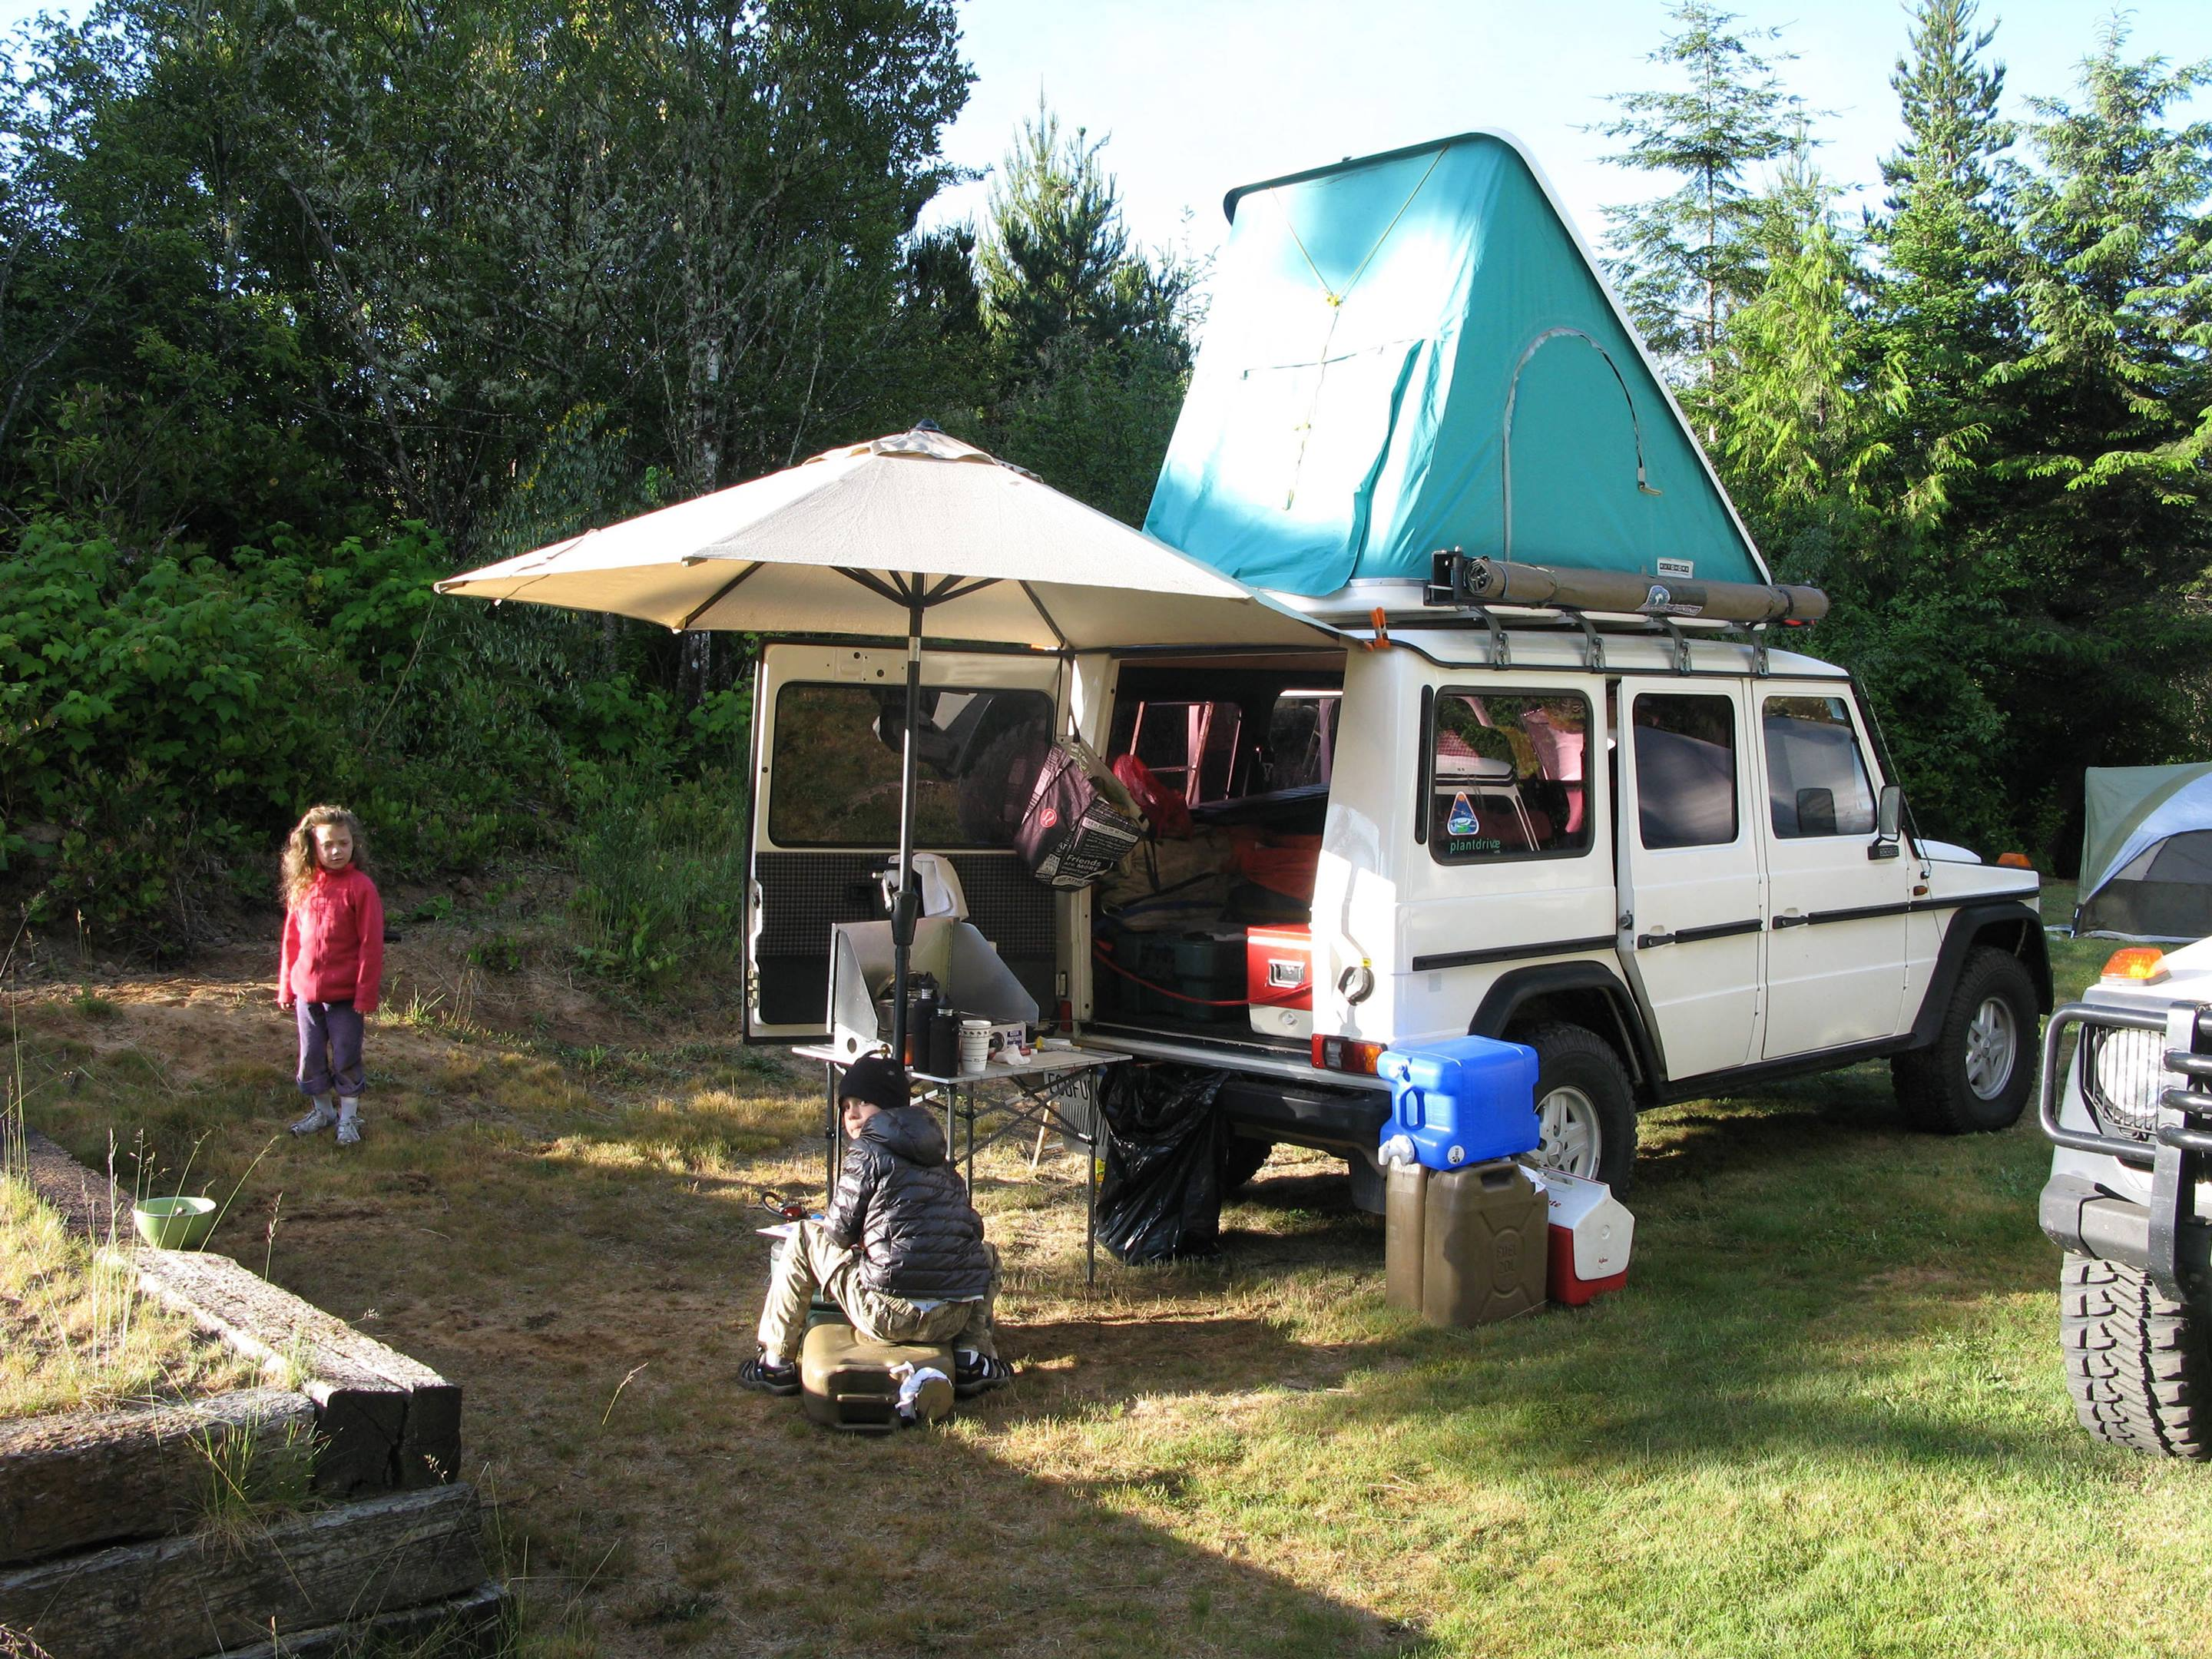 A G-wagen can be made into a very comfy overland camper.